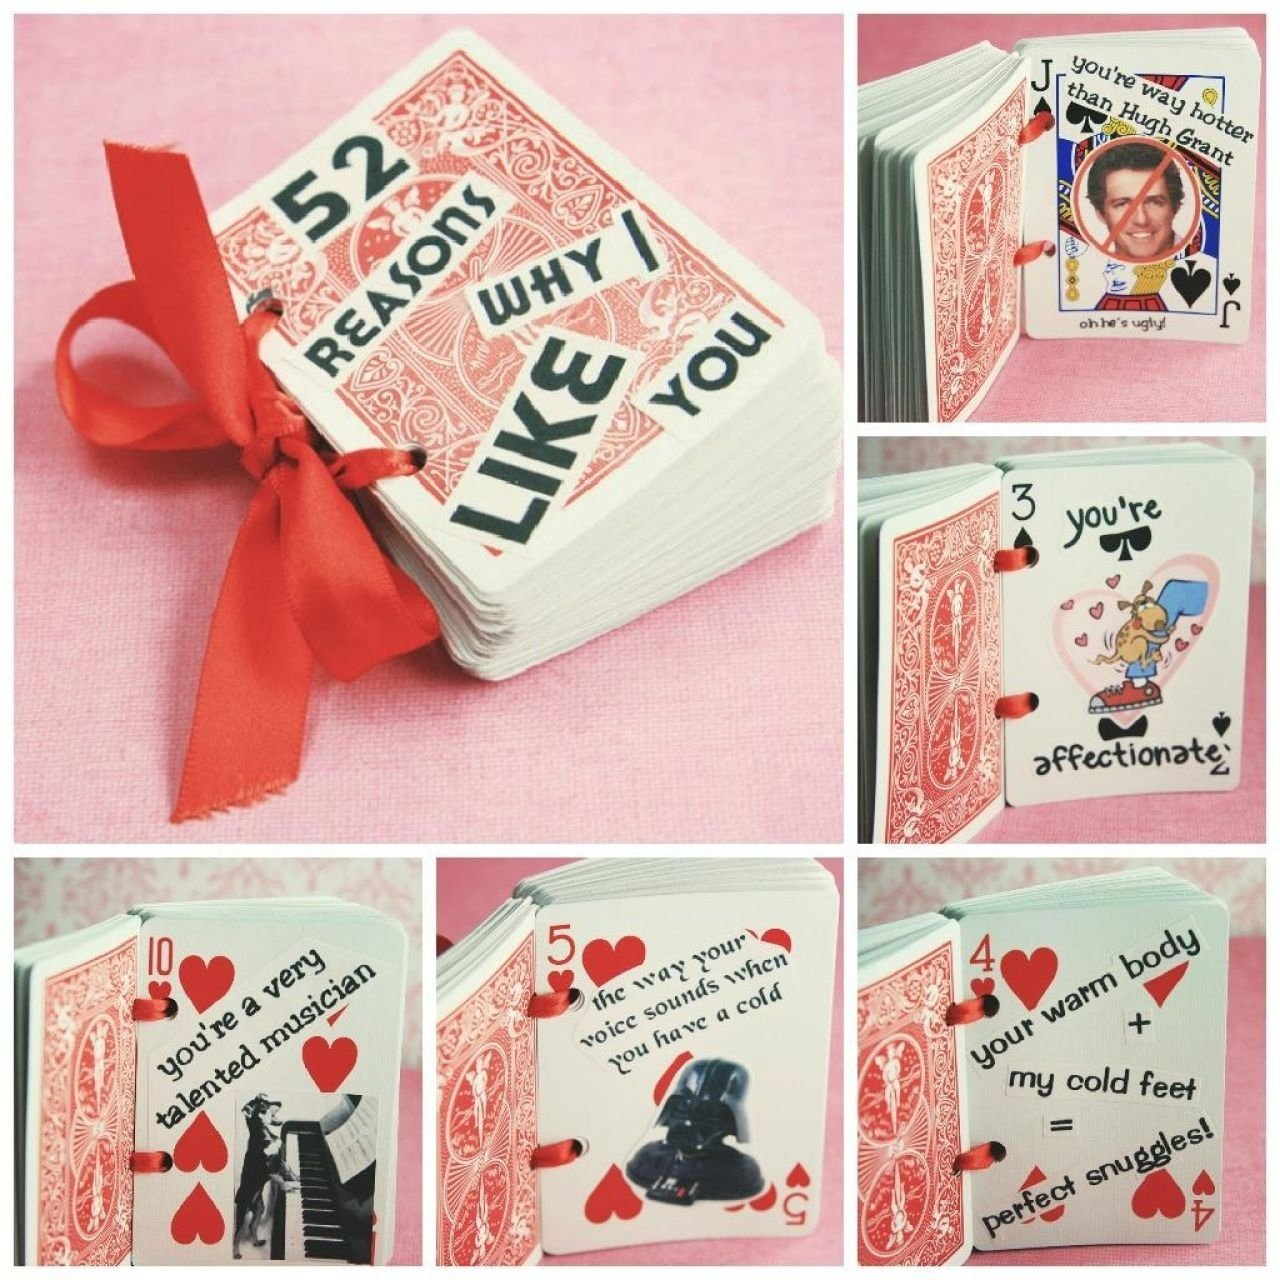 10 Fashionable Ideas For Boyfriend For Valentines Day valentines day crafts him lovely valentine gifts your dma homes 7 2021